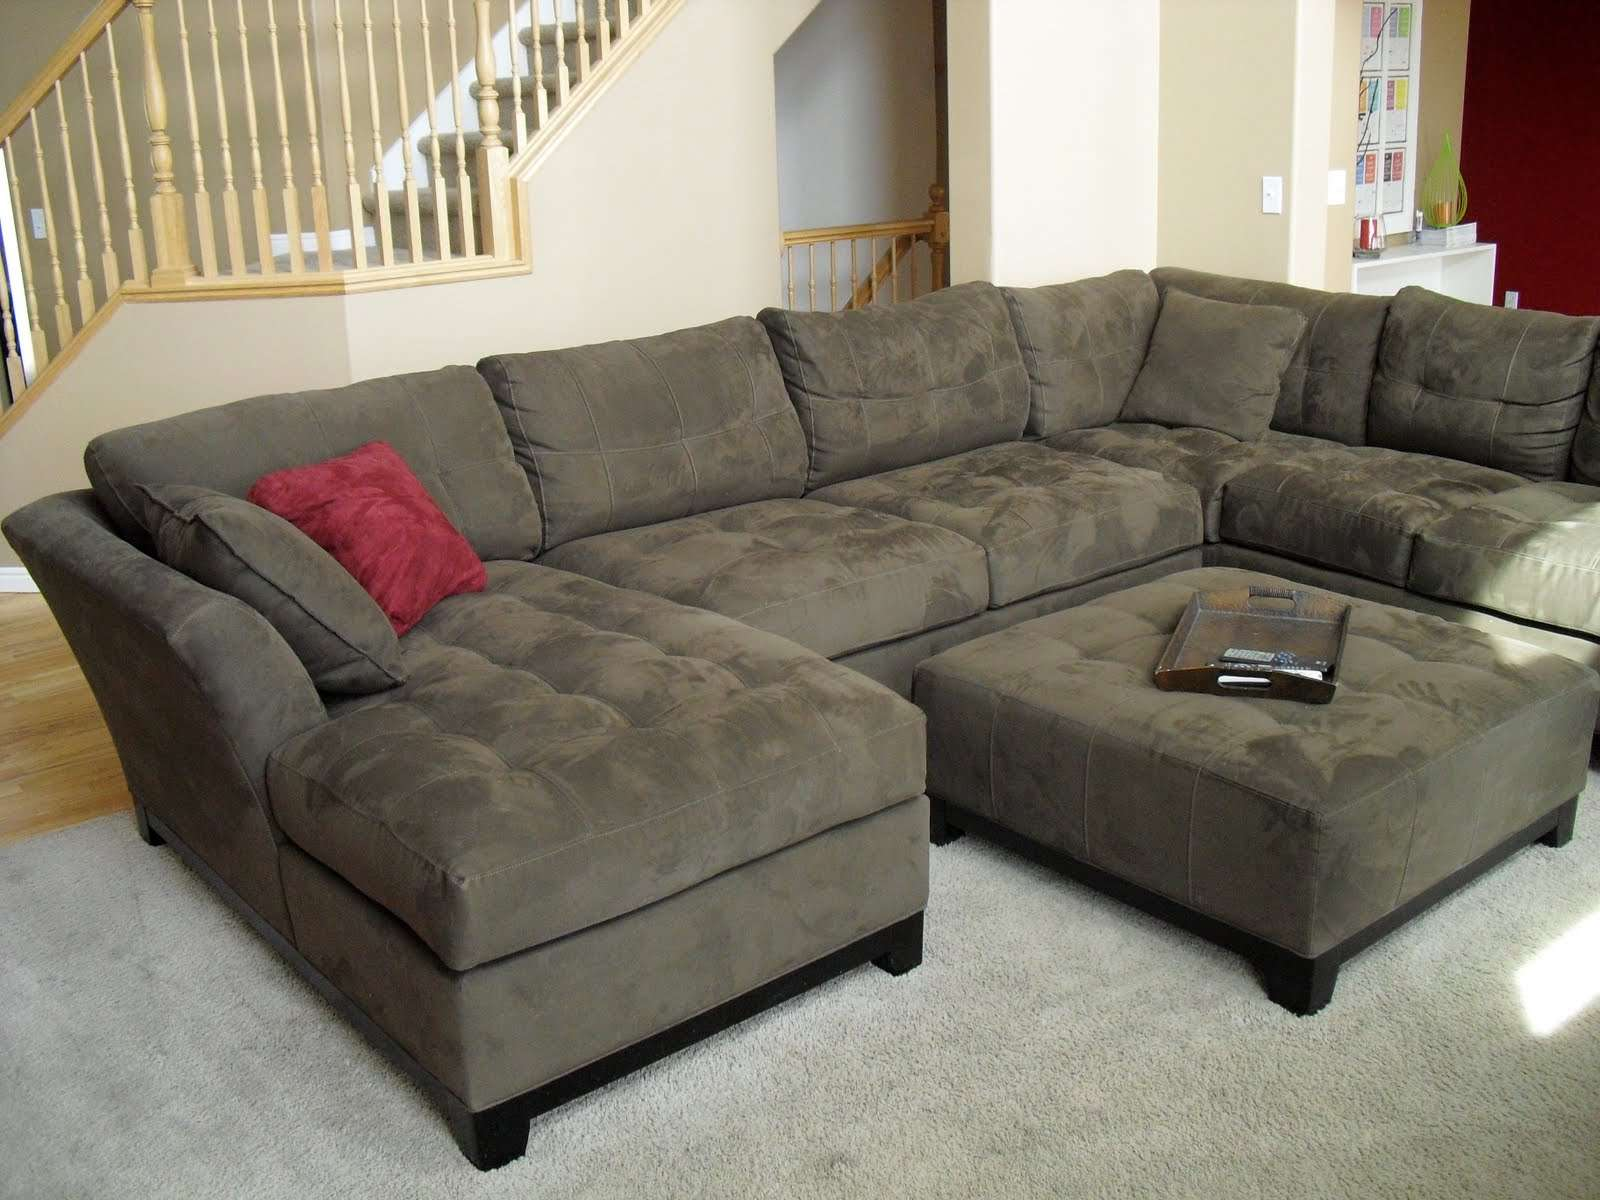 Home Furniture Decoration Green Walls Brown Couch